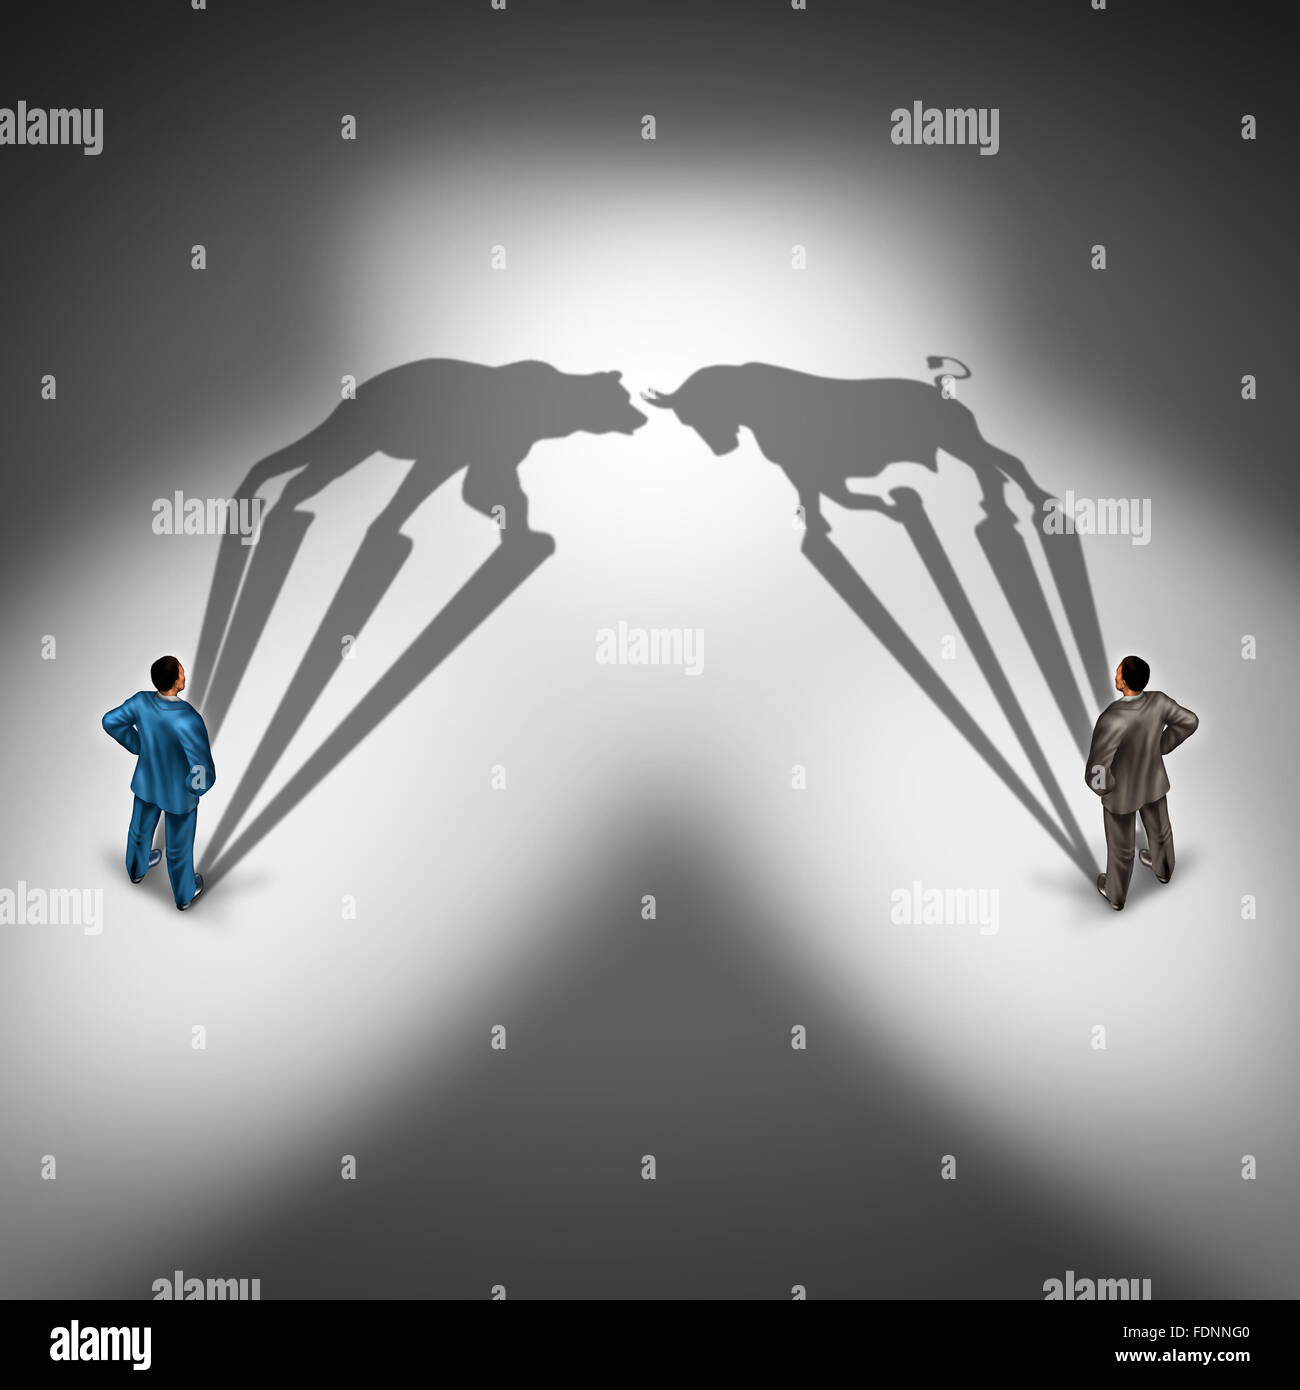 Bear and bull investor trading and investing financial symbol with a two businessmen representing bearish and bullish - Stock Image